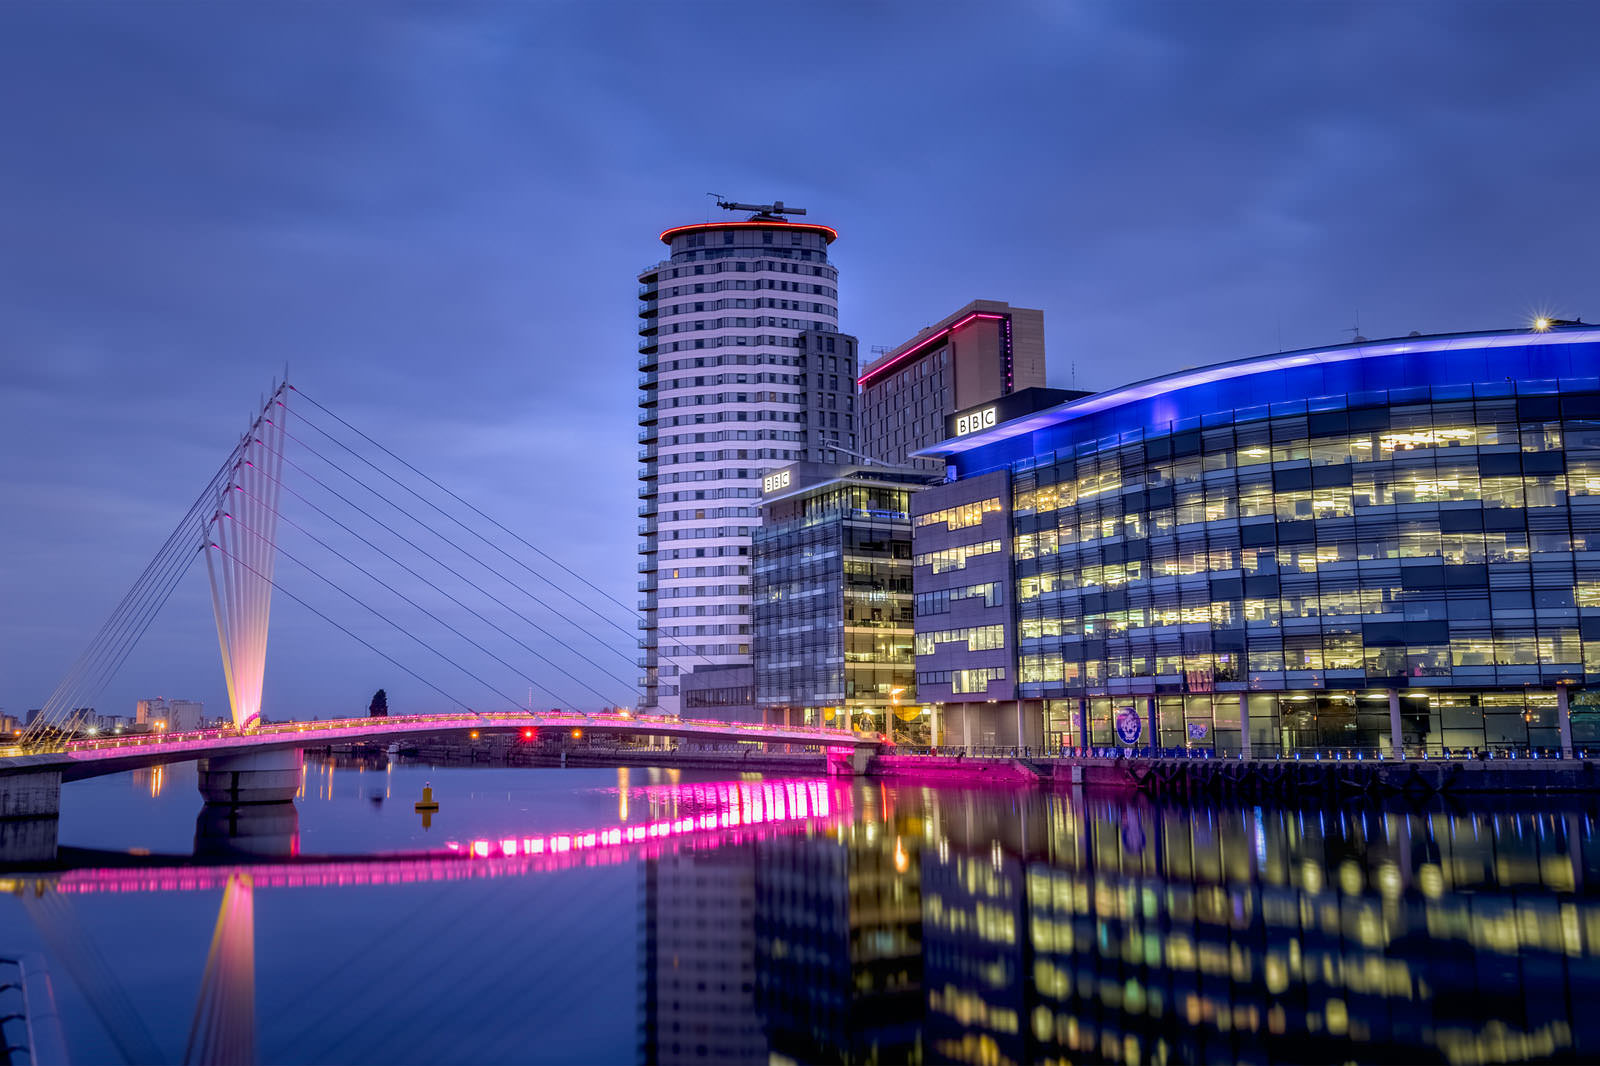 BBC Media City & Salford Quays - Manchester